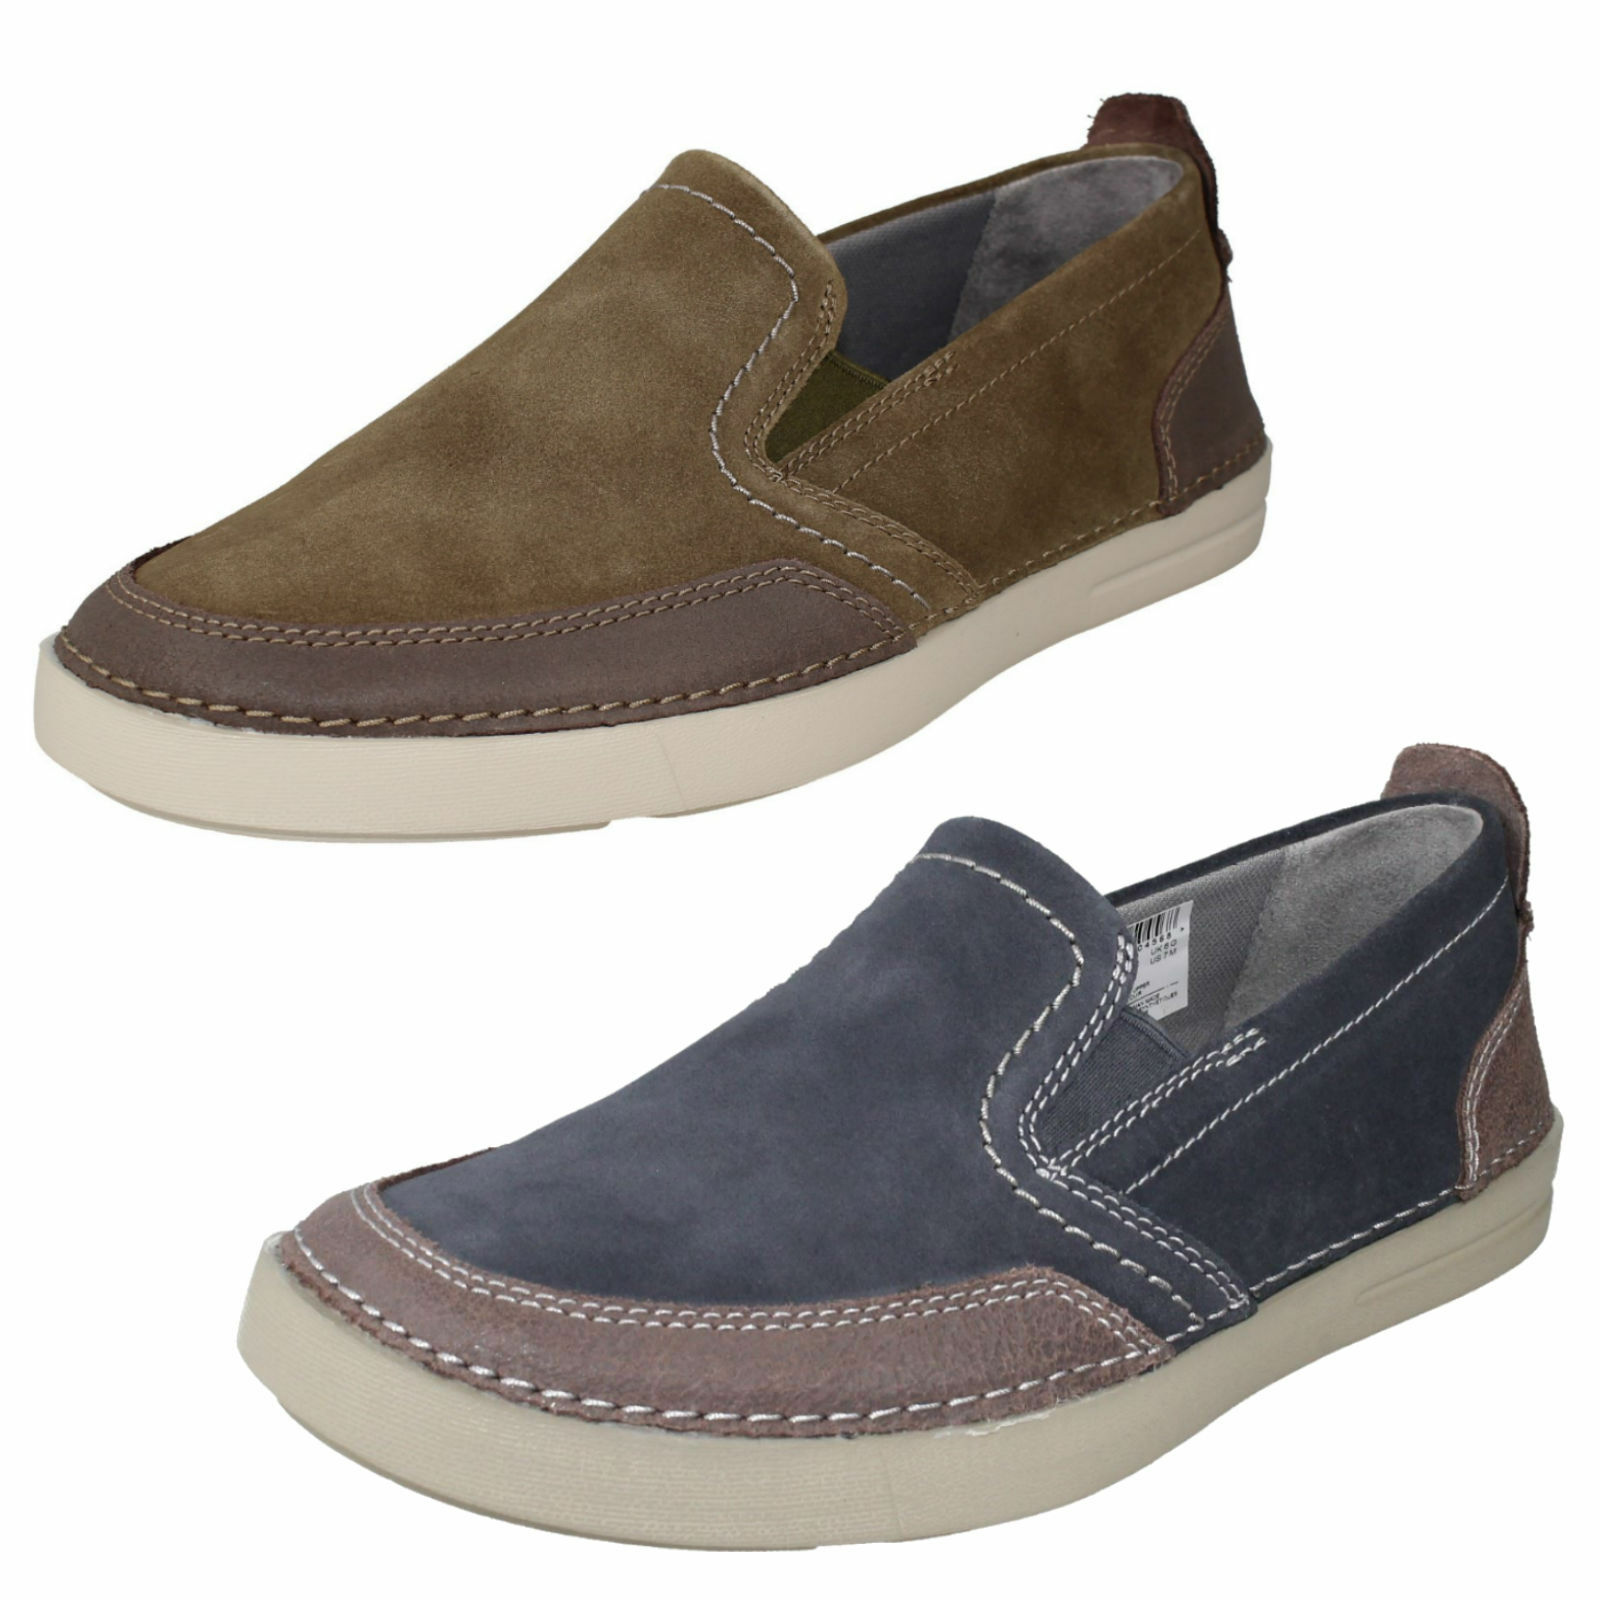 MENS CLARKS  SUEDE SLIP ON CASUAL LIGHTWEIGHT MOCCASIN SHOES GOSLER RACE